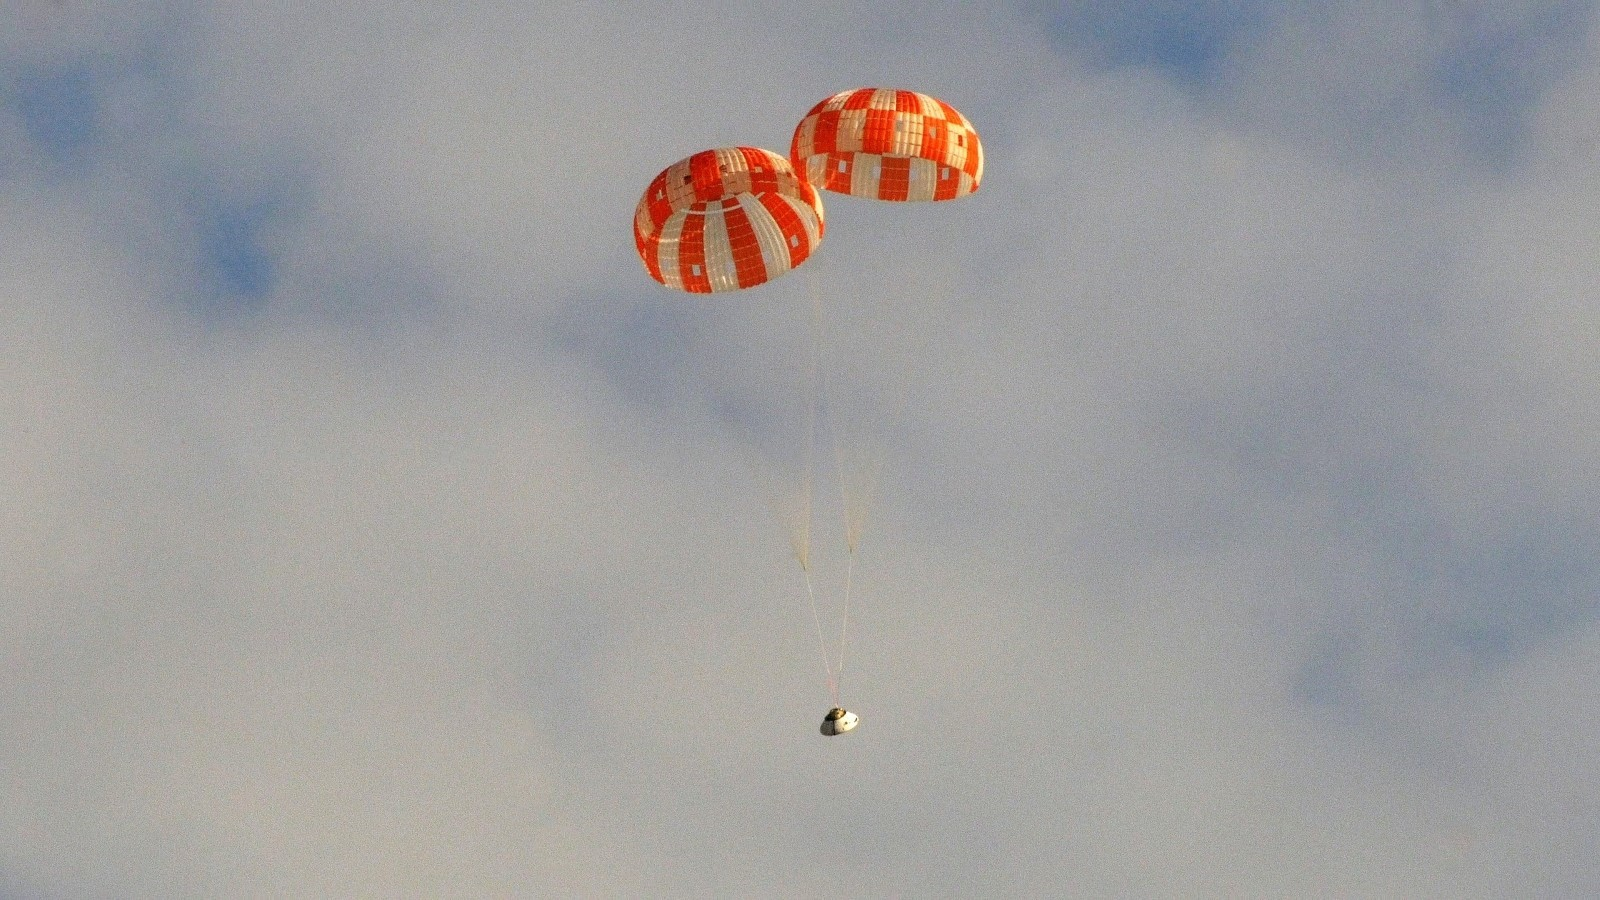 Orion parachute test – 2015-08-26